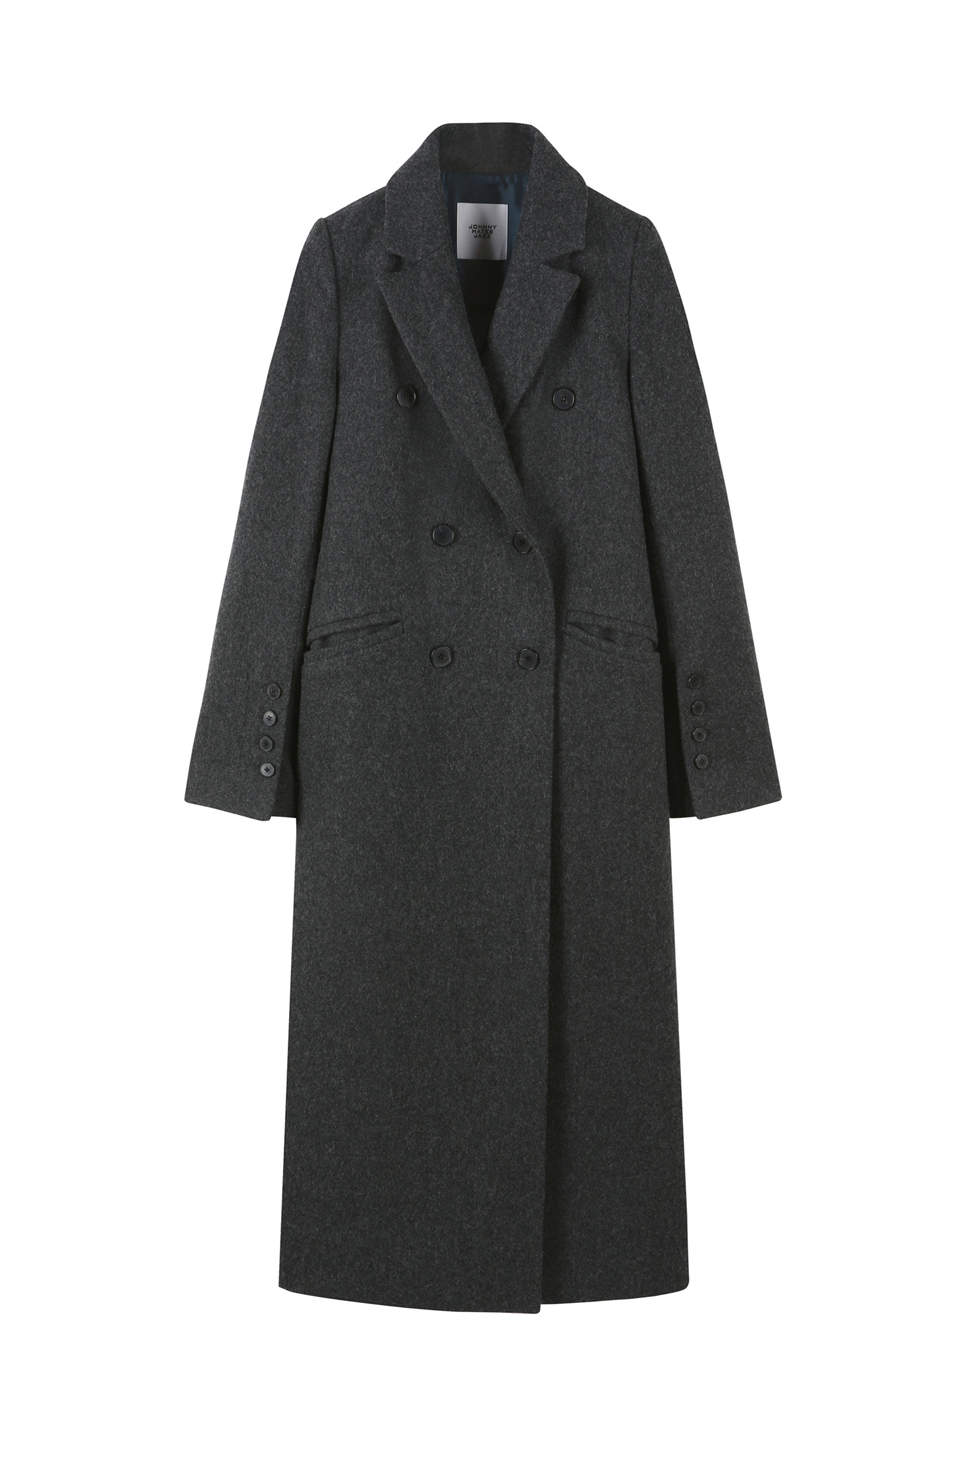 TAILORED WOOL LONG COAT - GREY